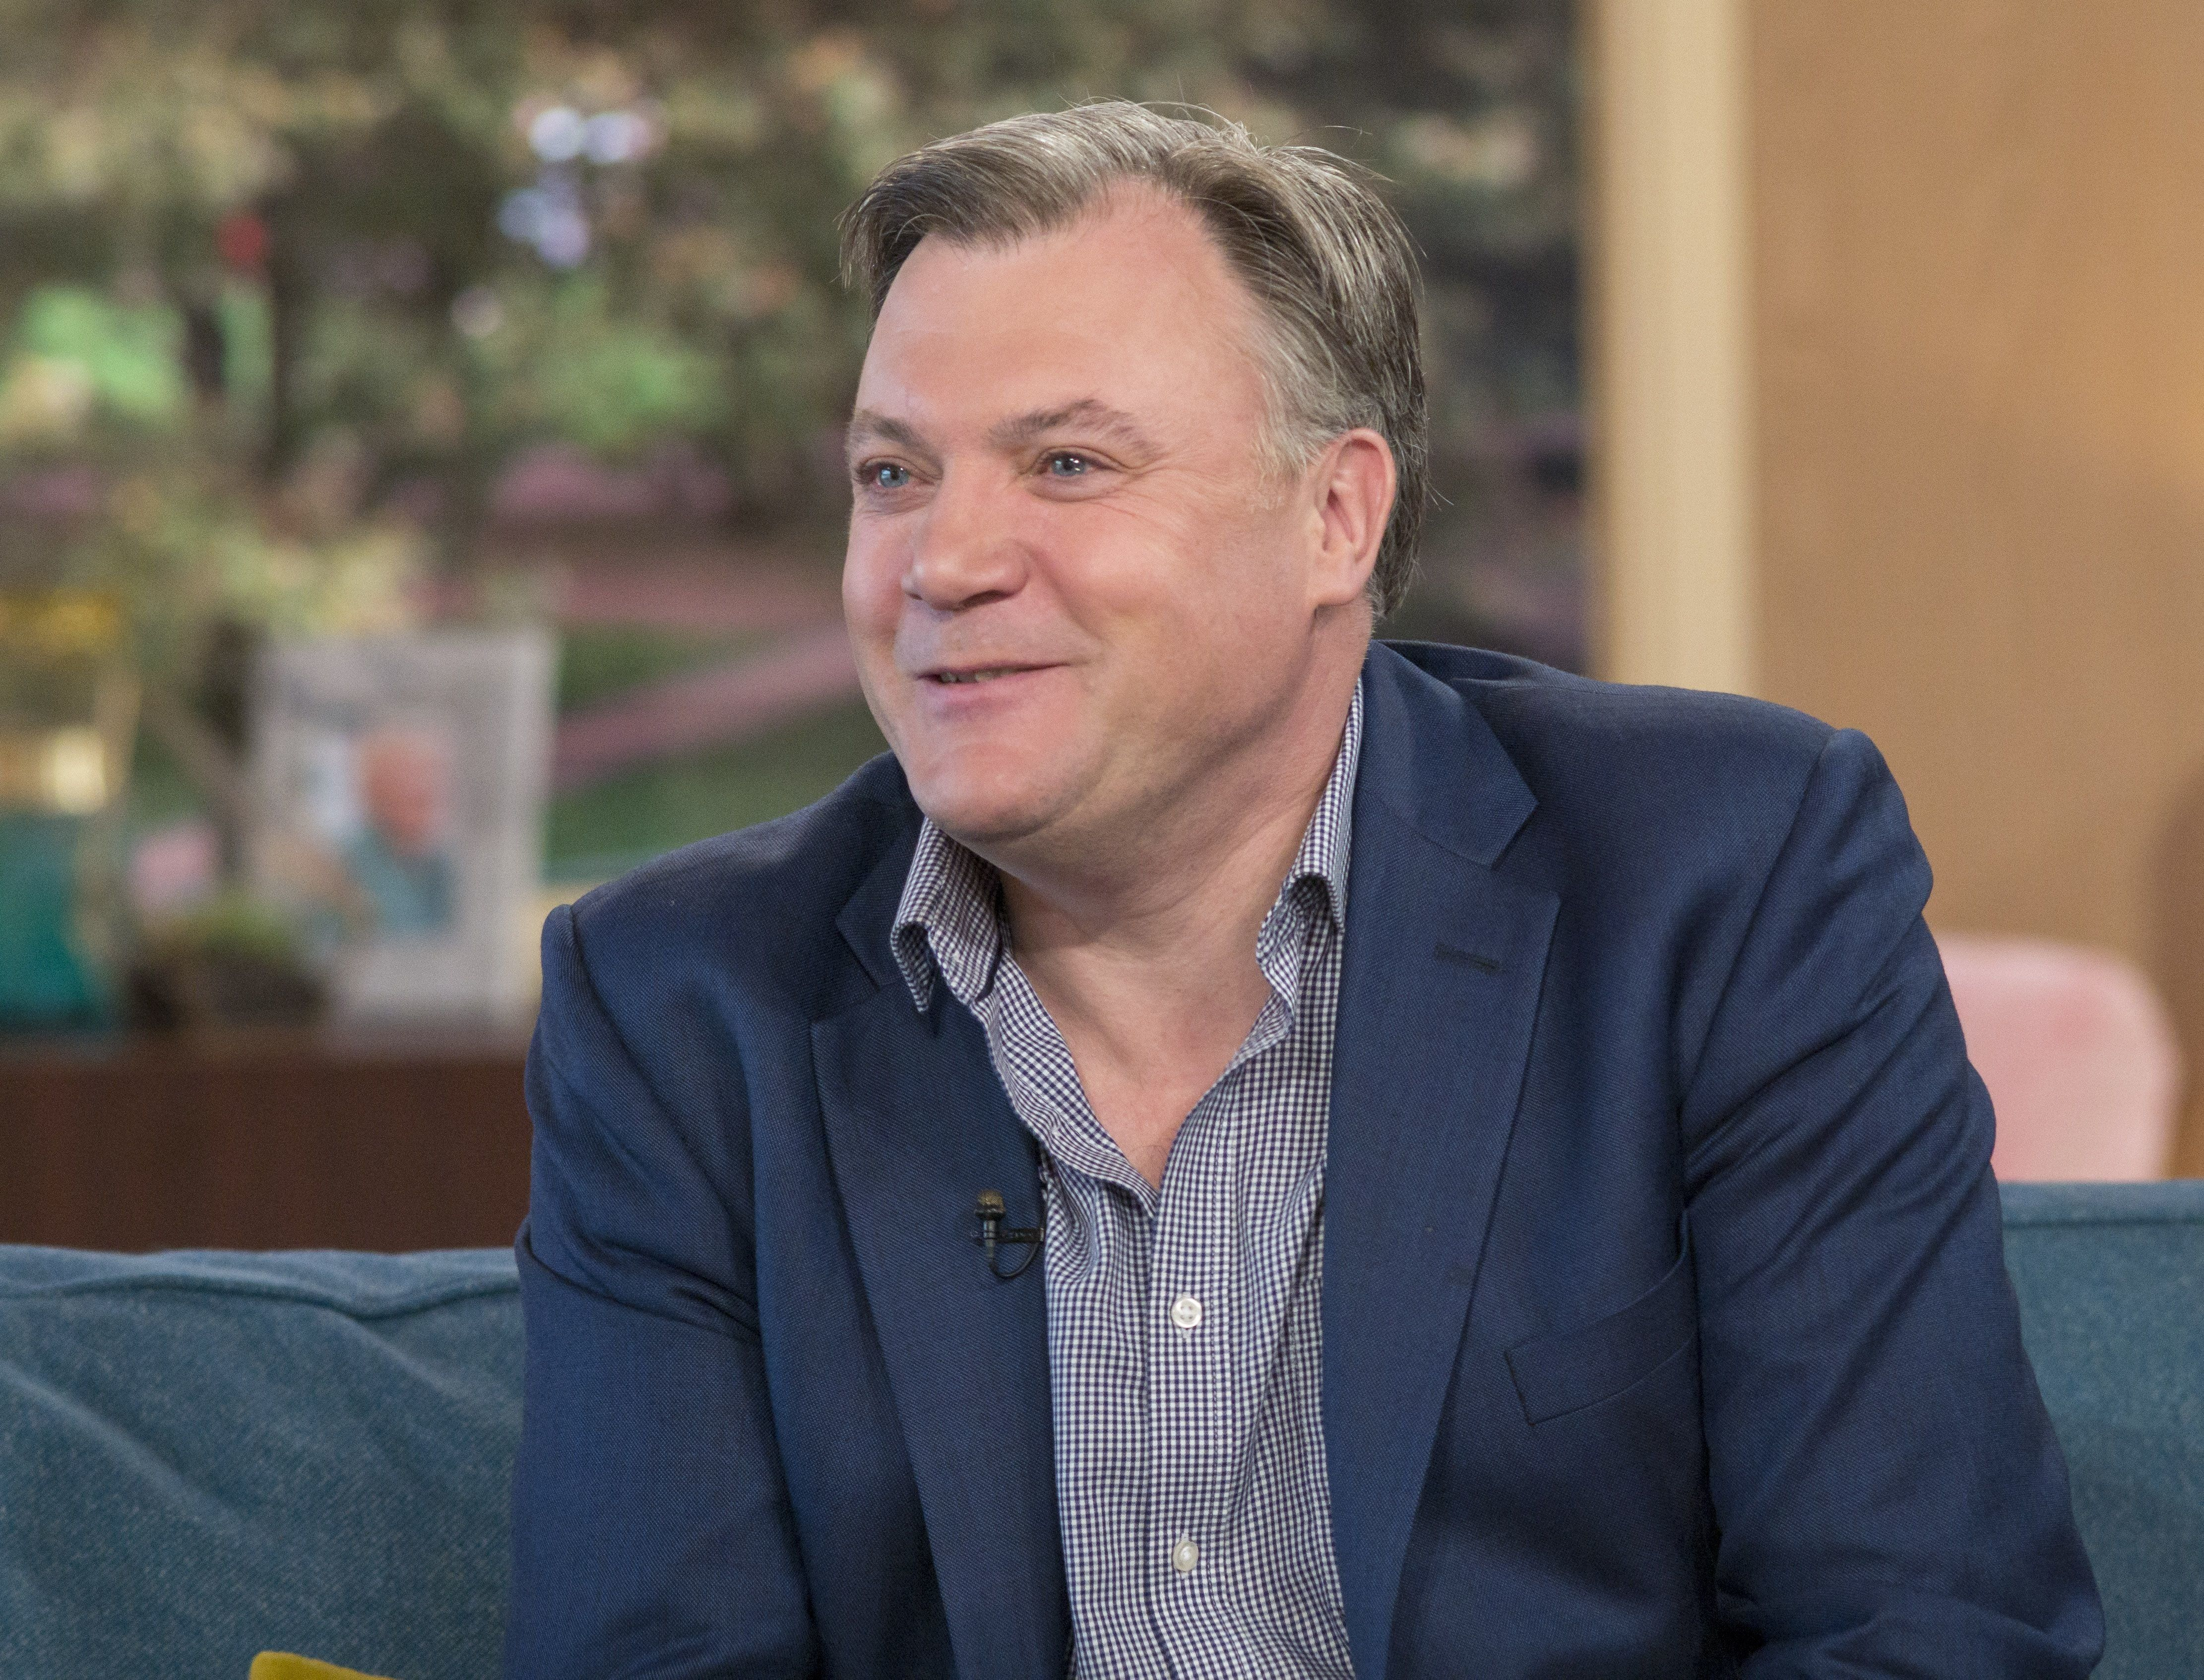 Ed Balls On Why He Thinks 'Strictly' Is 'Good For